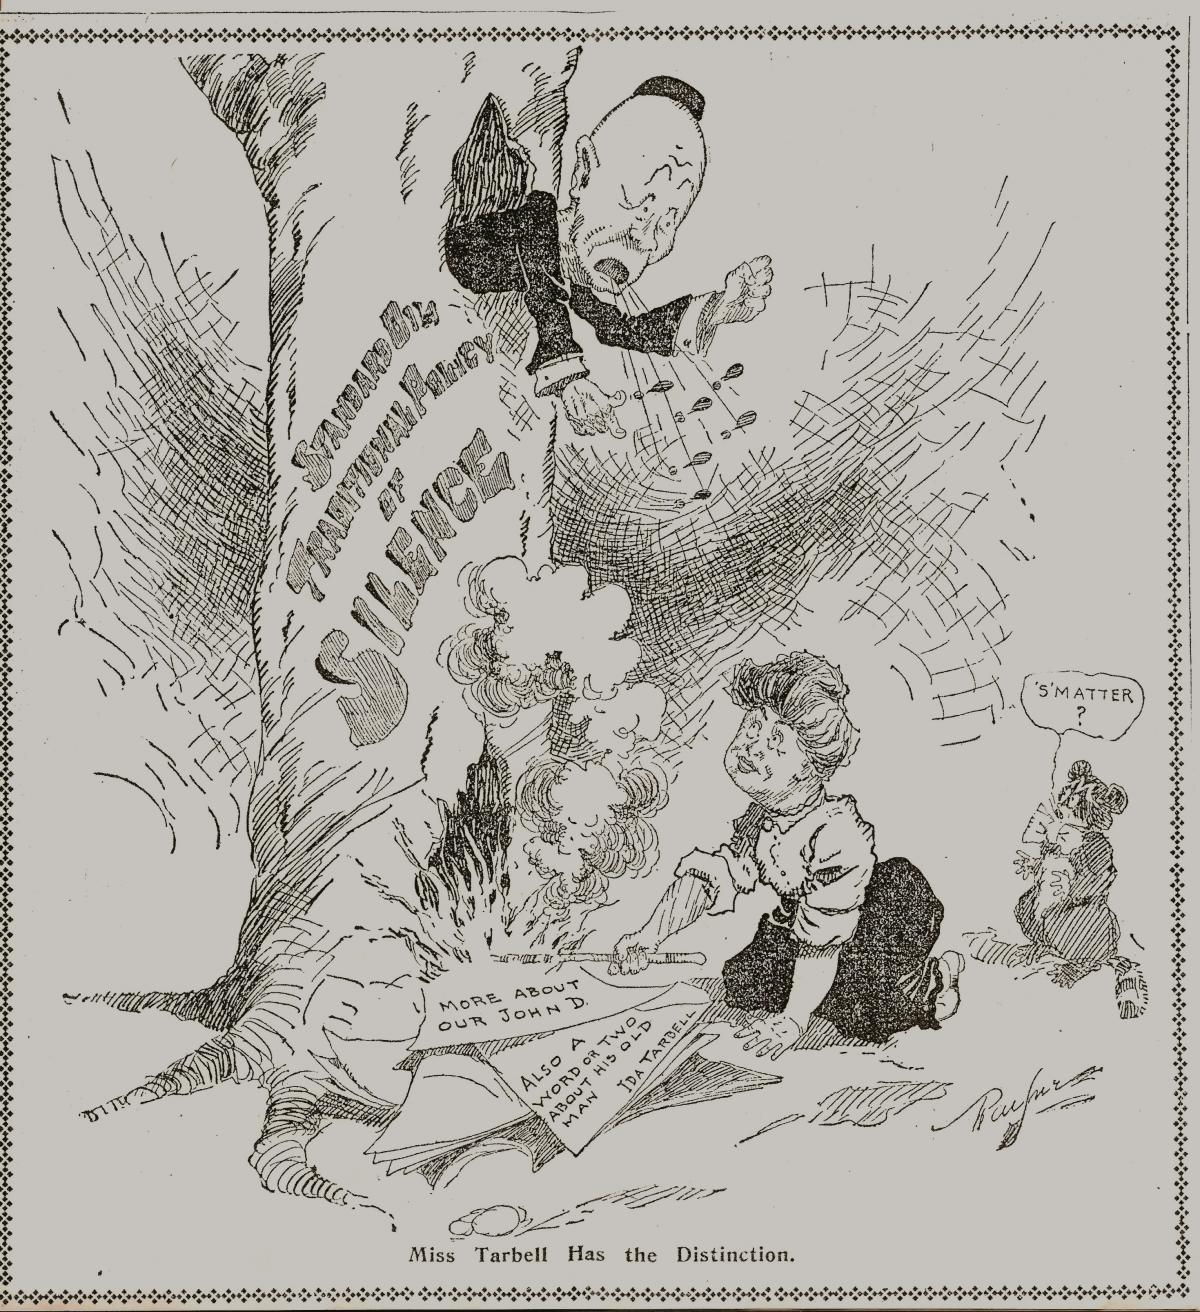 Political cartoon depicting a man in a tree and a woman fanning flames